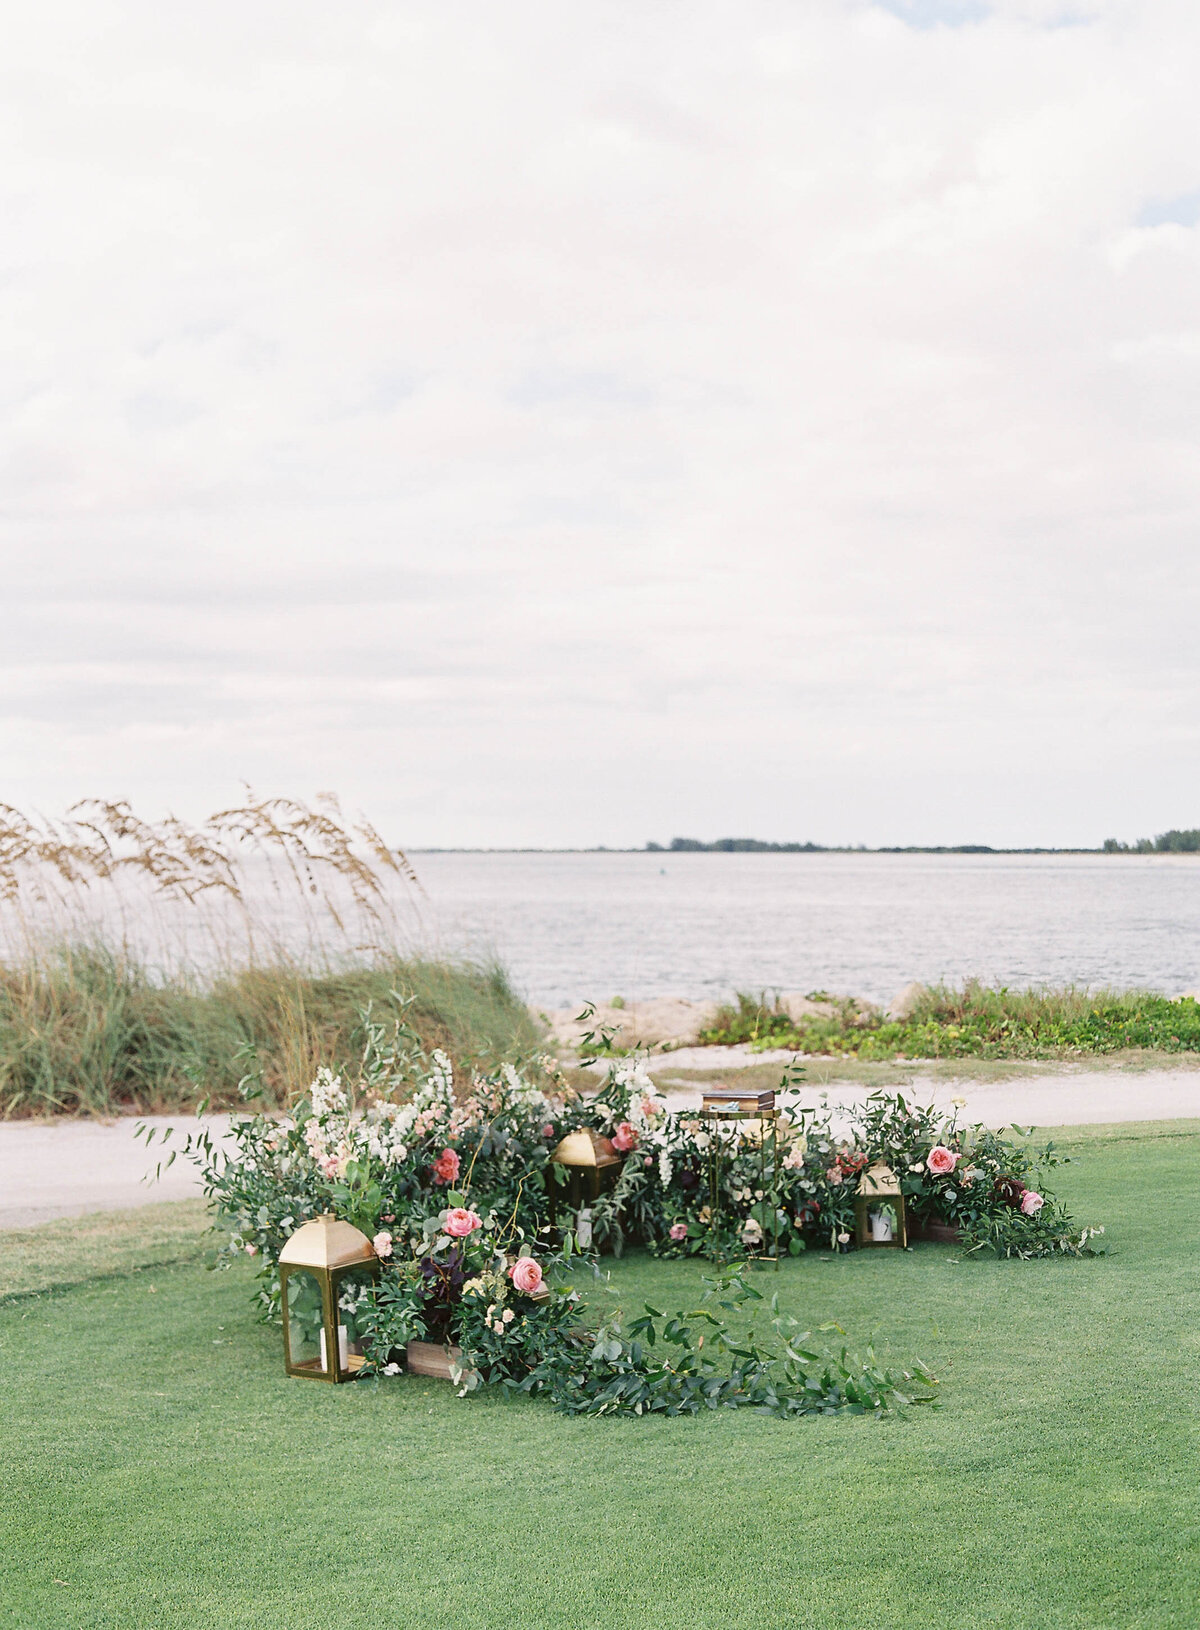 South_Seas_Island_Resort_Captiva_Island_Wedding_Photographer-17